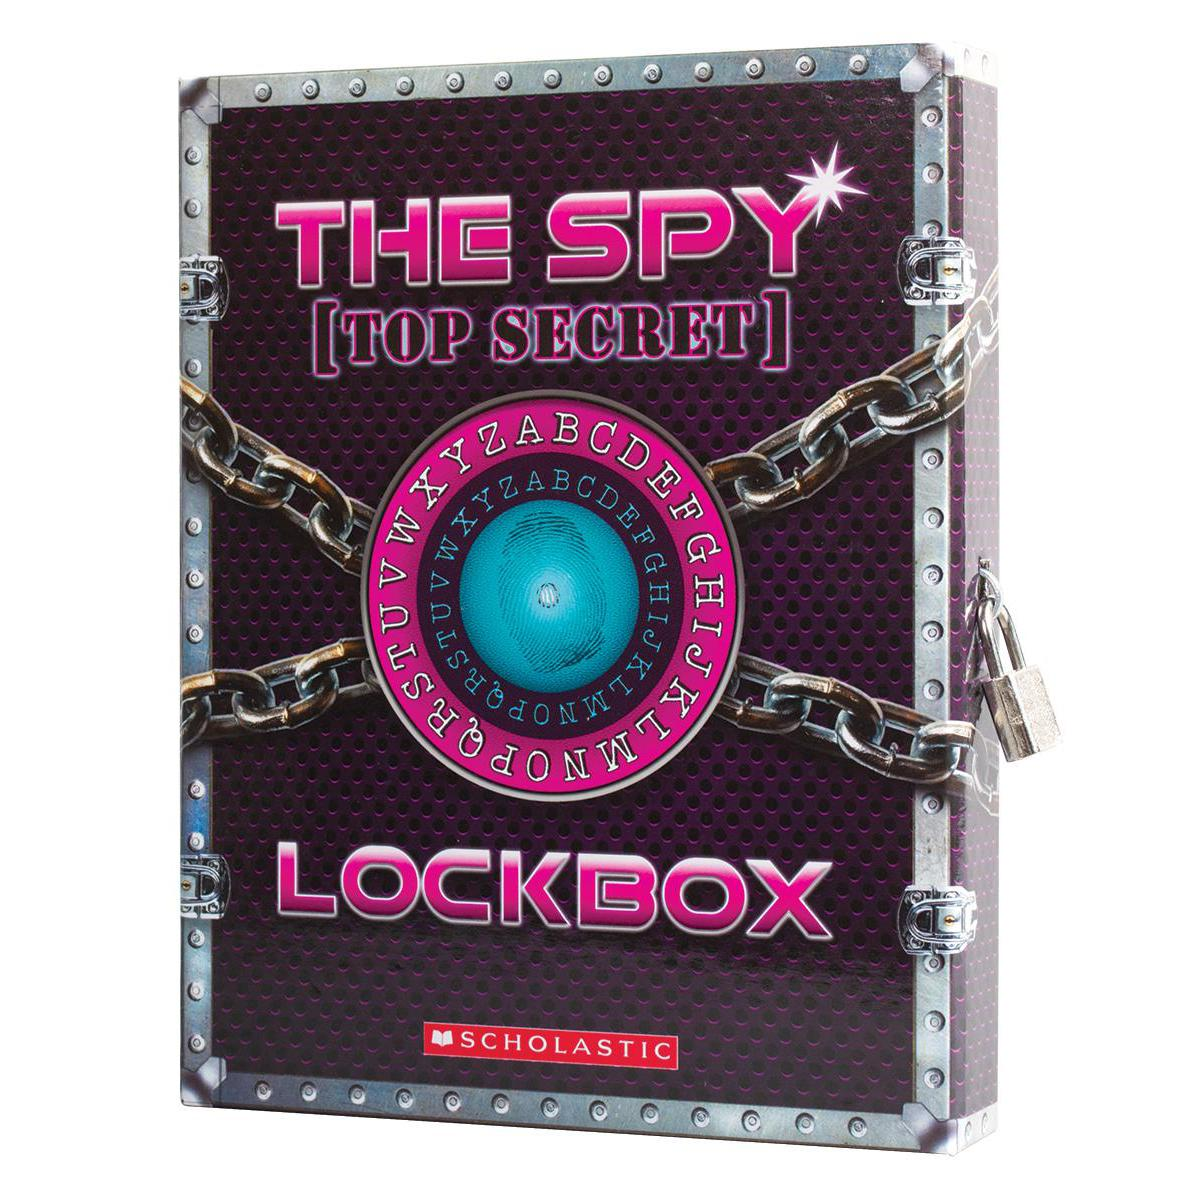 The Spy Lockbox [Top Secret]